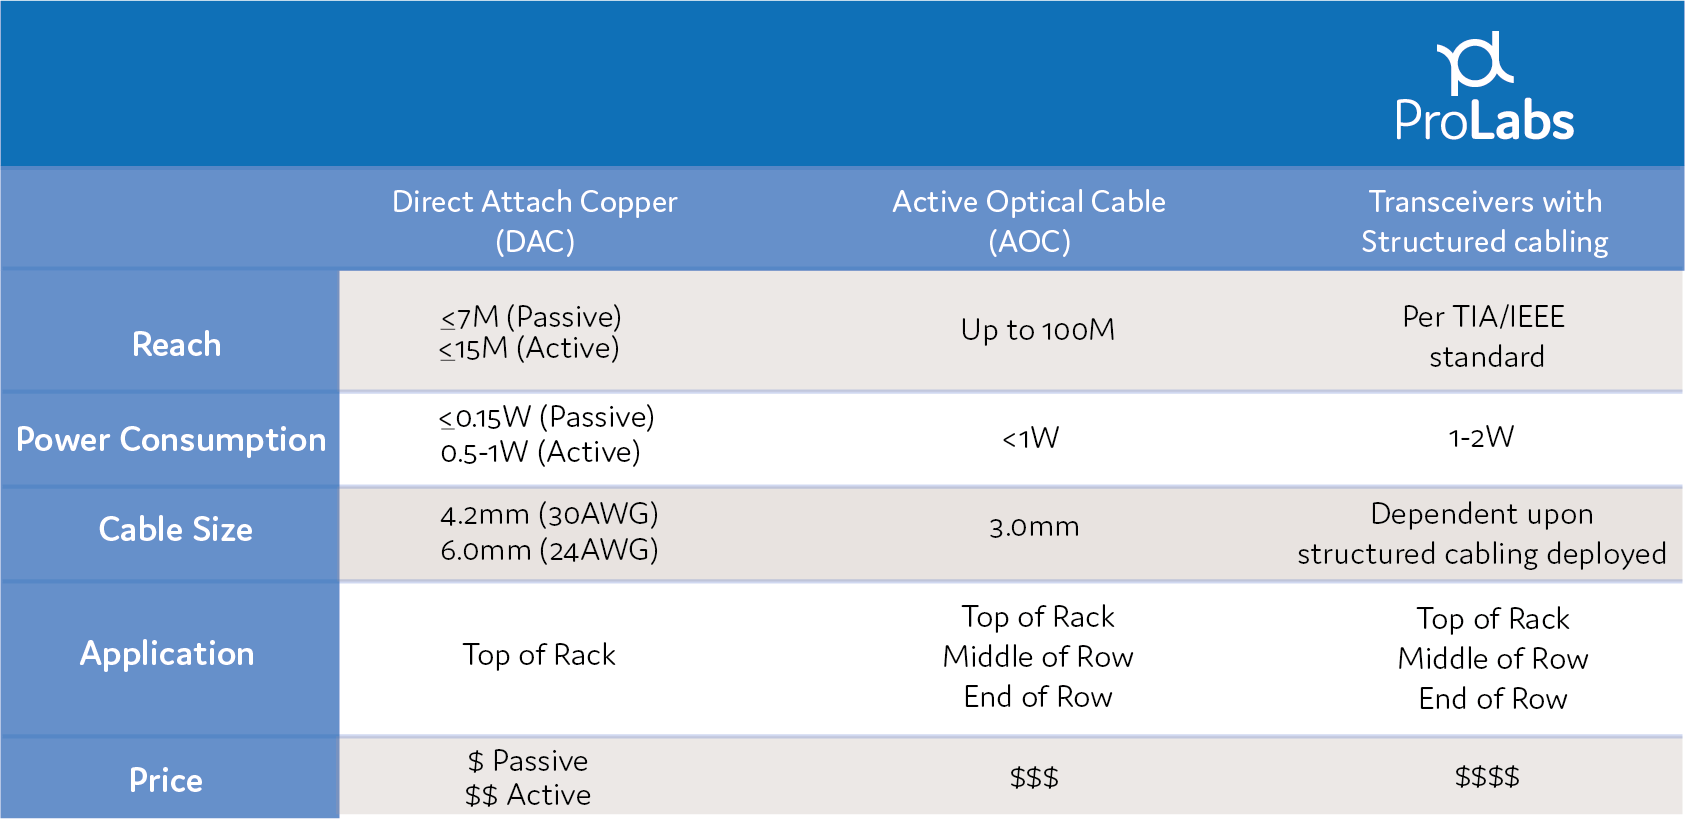 TS-Table_DAC_AOC_Structured Cablin_ProLabs